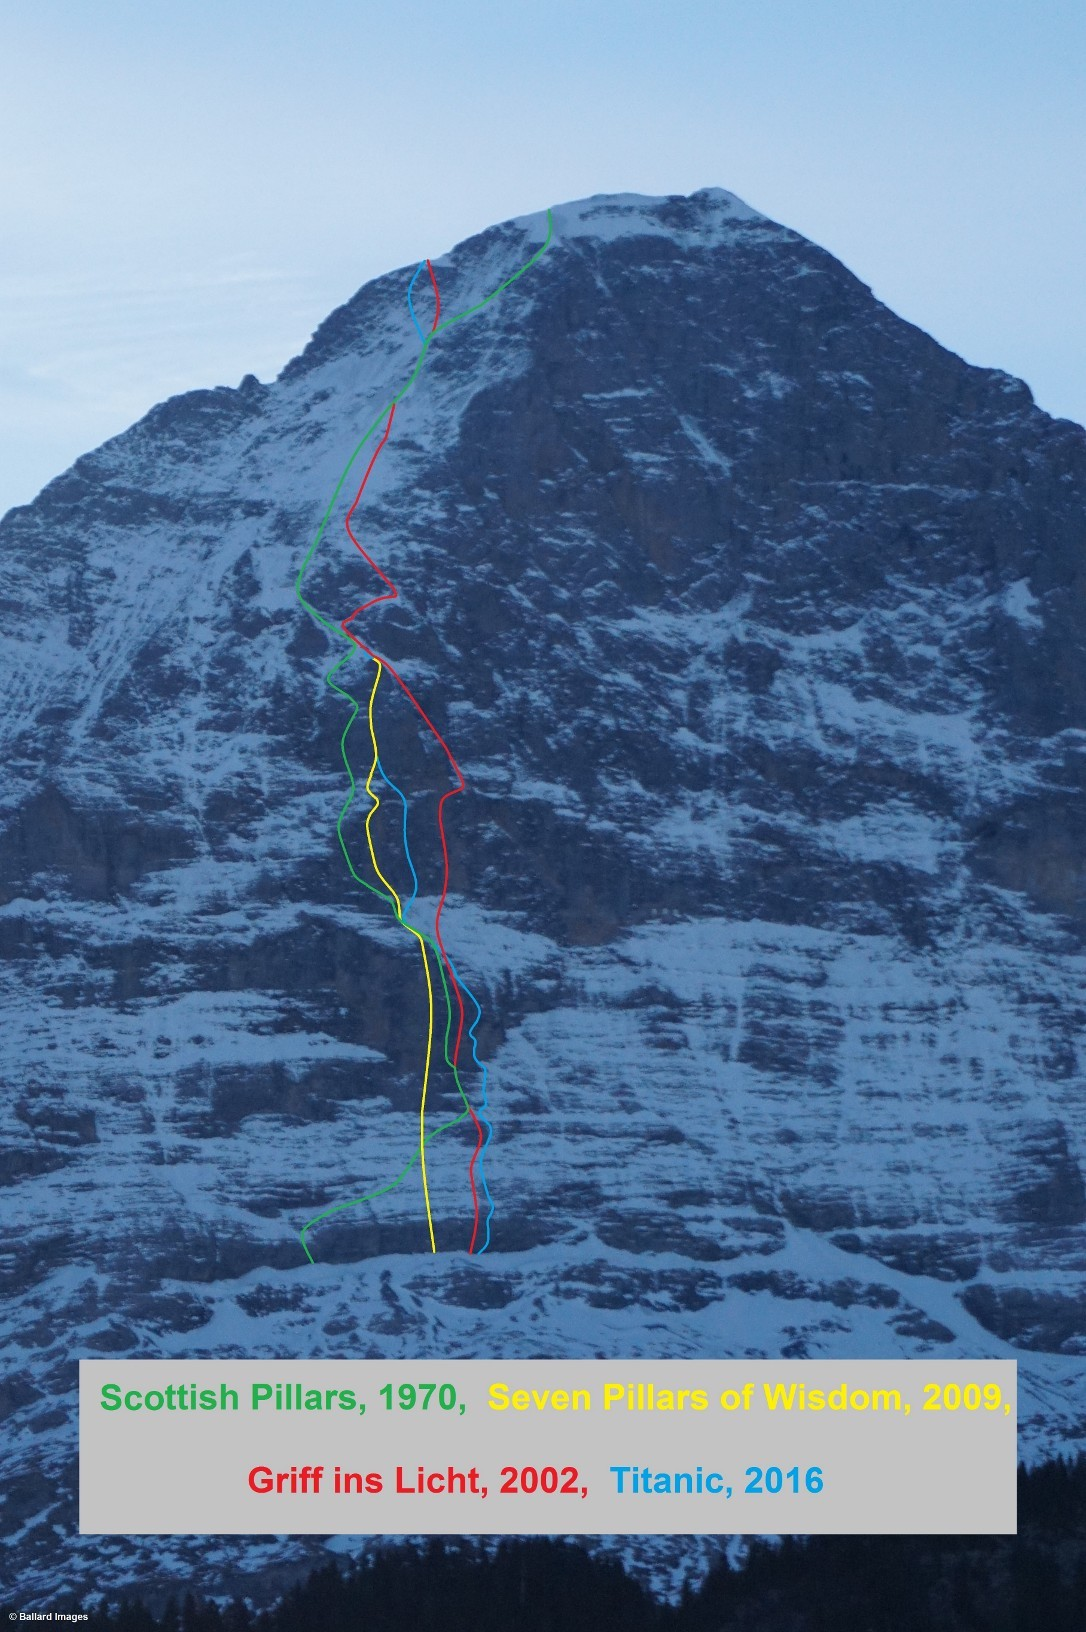 Tom Ballard's updated map of the Eiger's North Pillar routes. Titanic is shown in blue. Ballard said he discovered inaccuracies about the exact lines of these routes as they appear in other sources.* [Photo] Tom Ballard